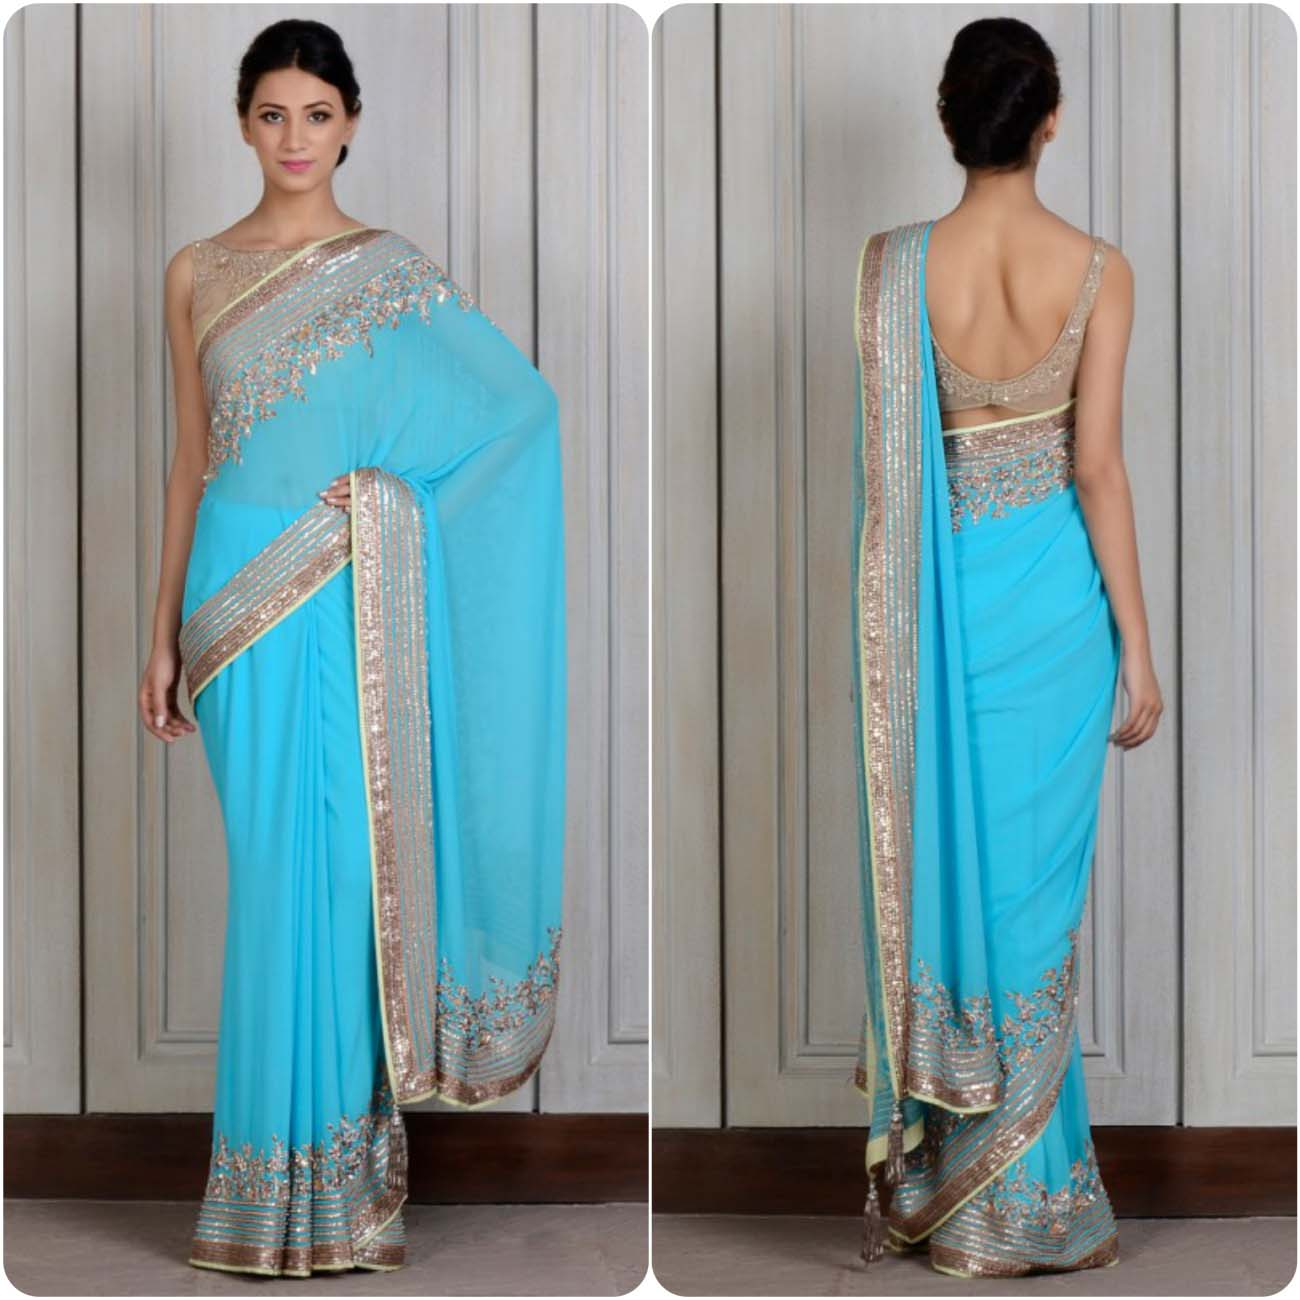 Manish Malhotra Designers Saree Collection 2016-2017...styloplanet (16)